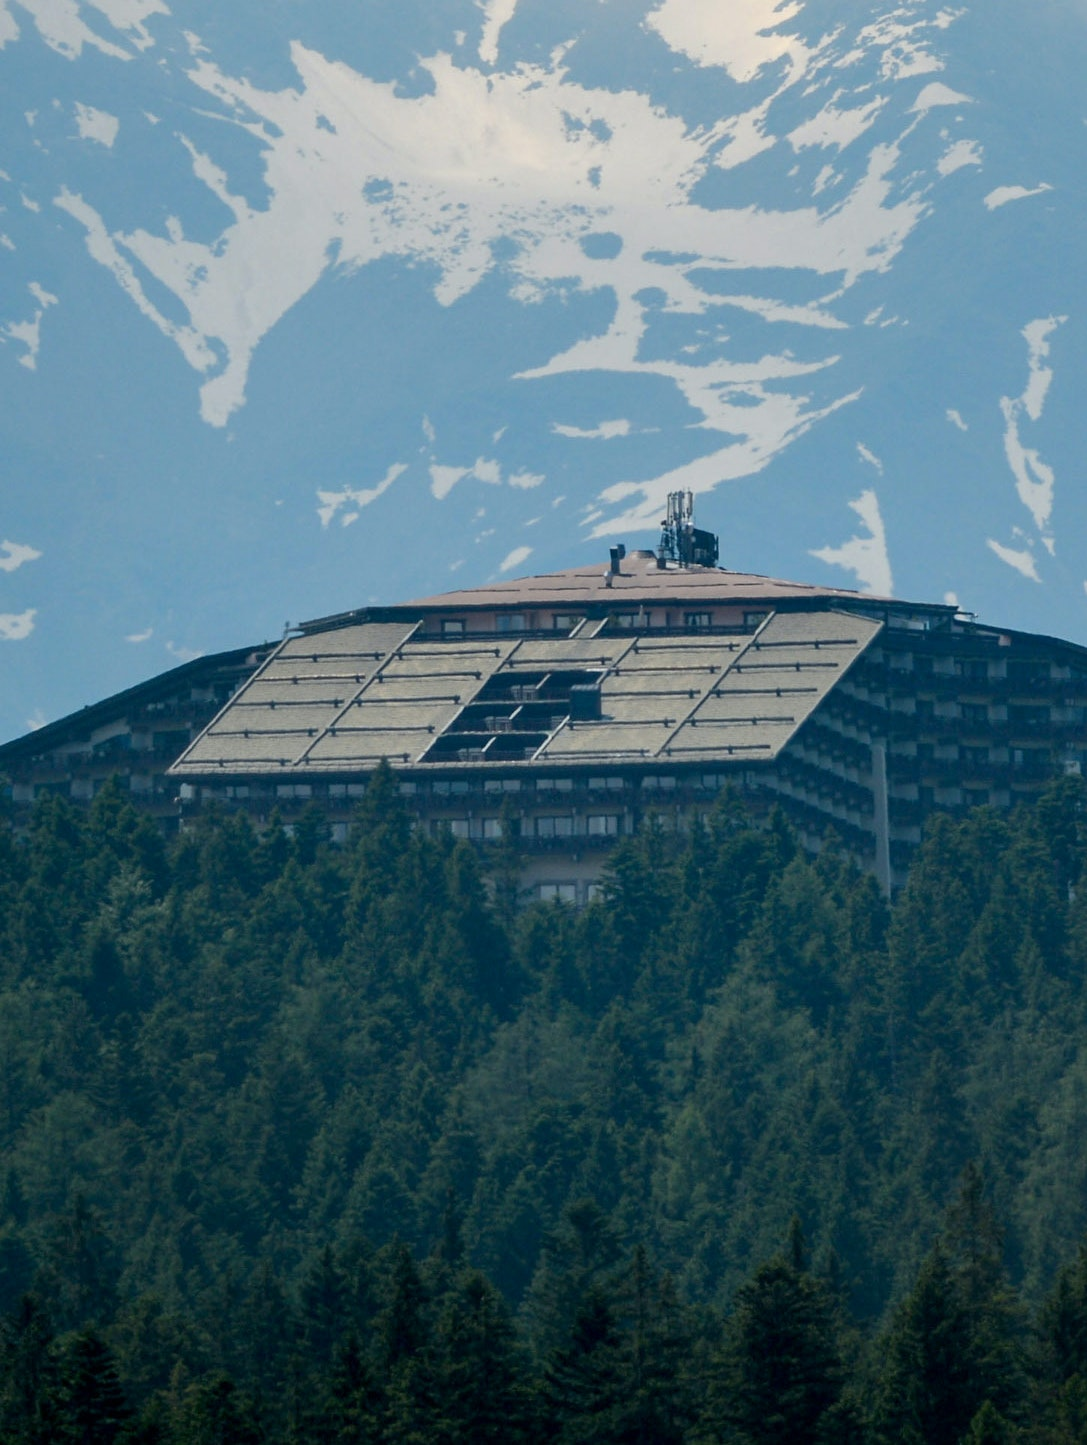 The Interalpen-Hotel Tirol, venue of the Bilderberg conference, is seen behind trees on a ridge on June 11, 2015.